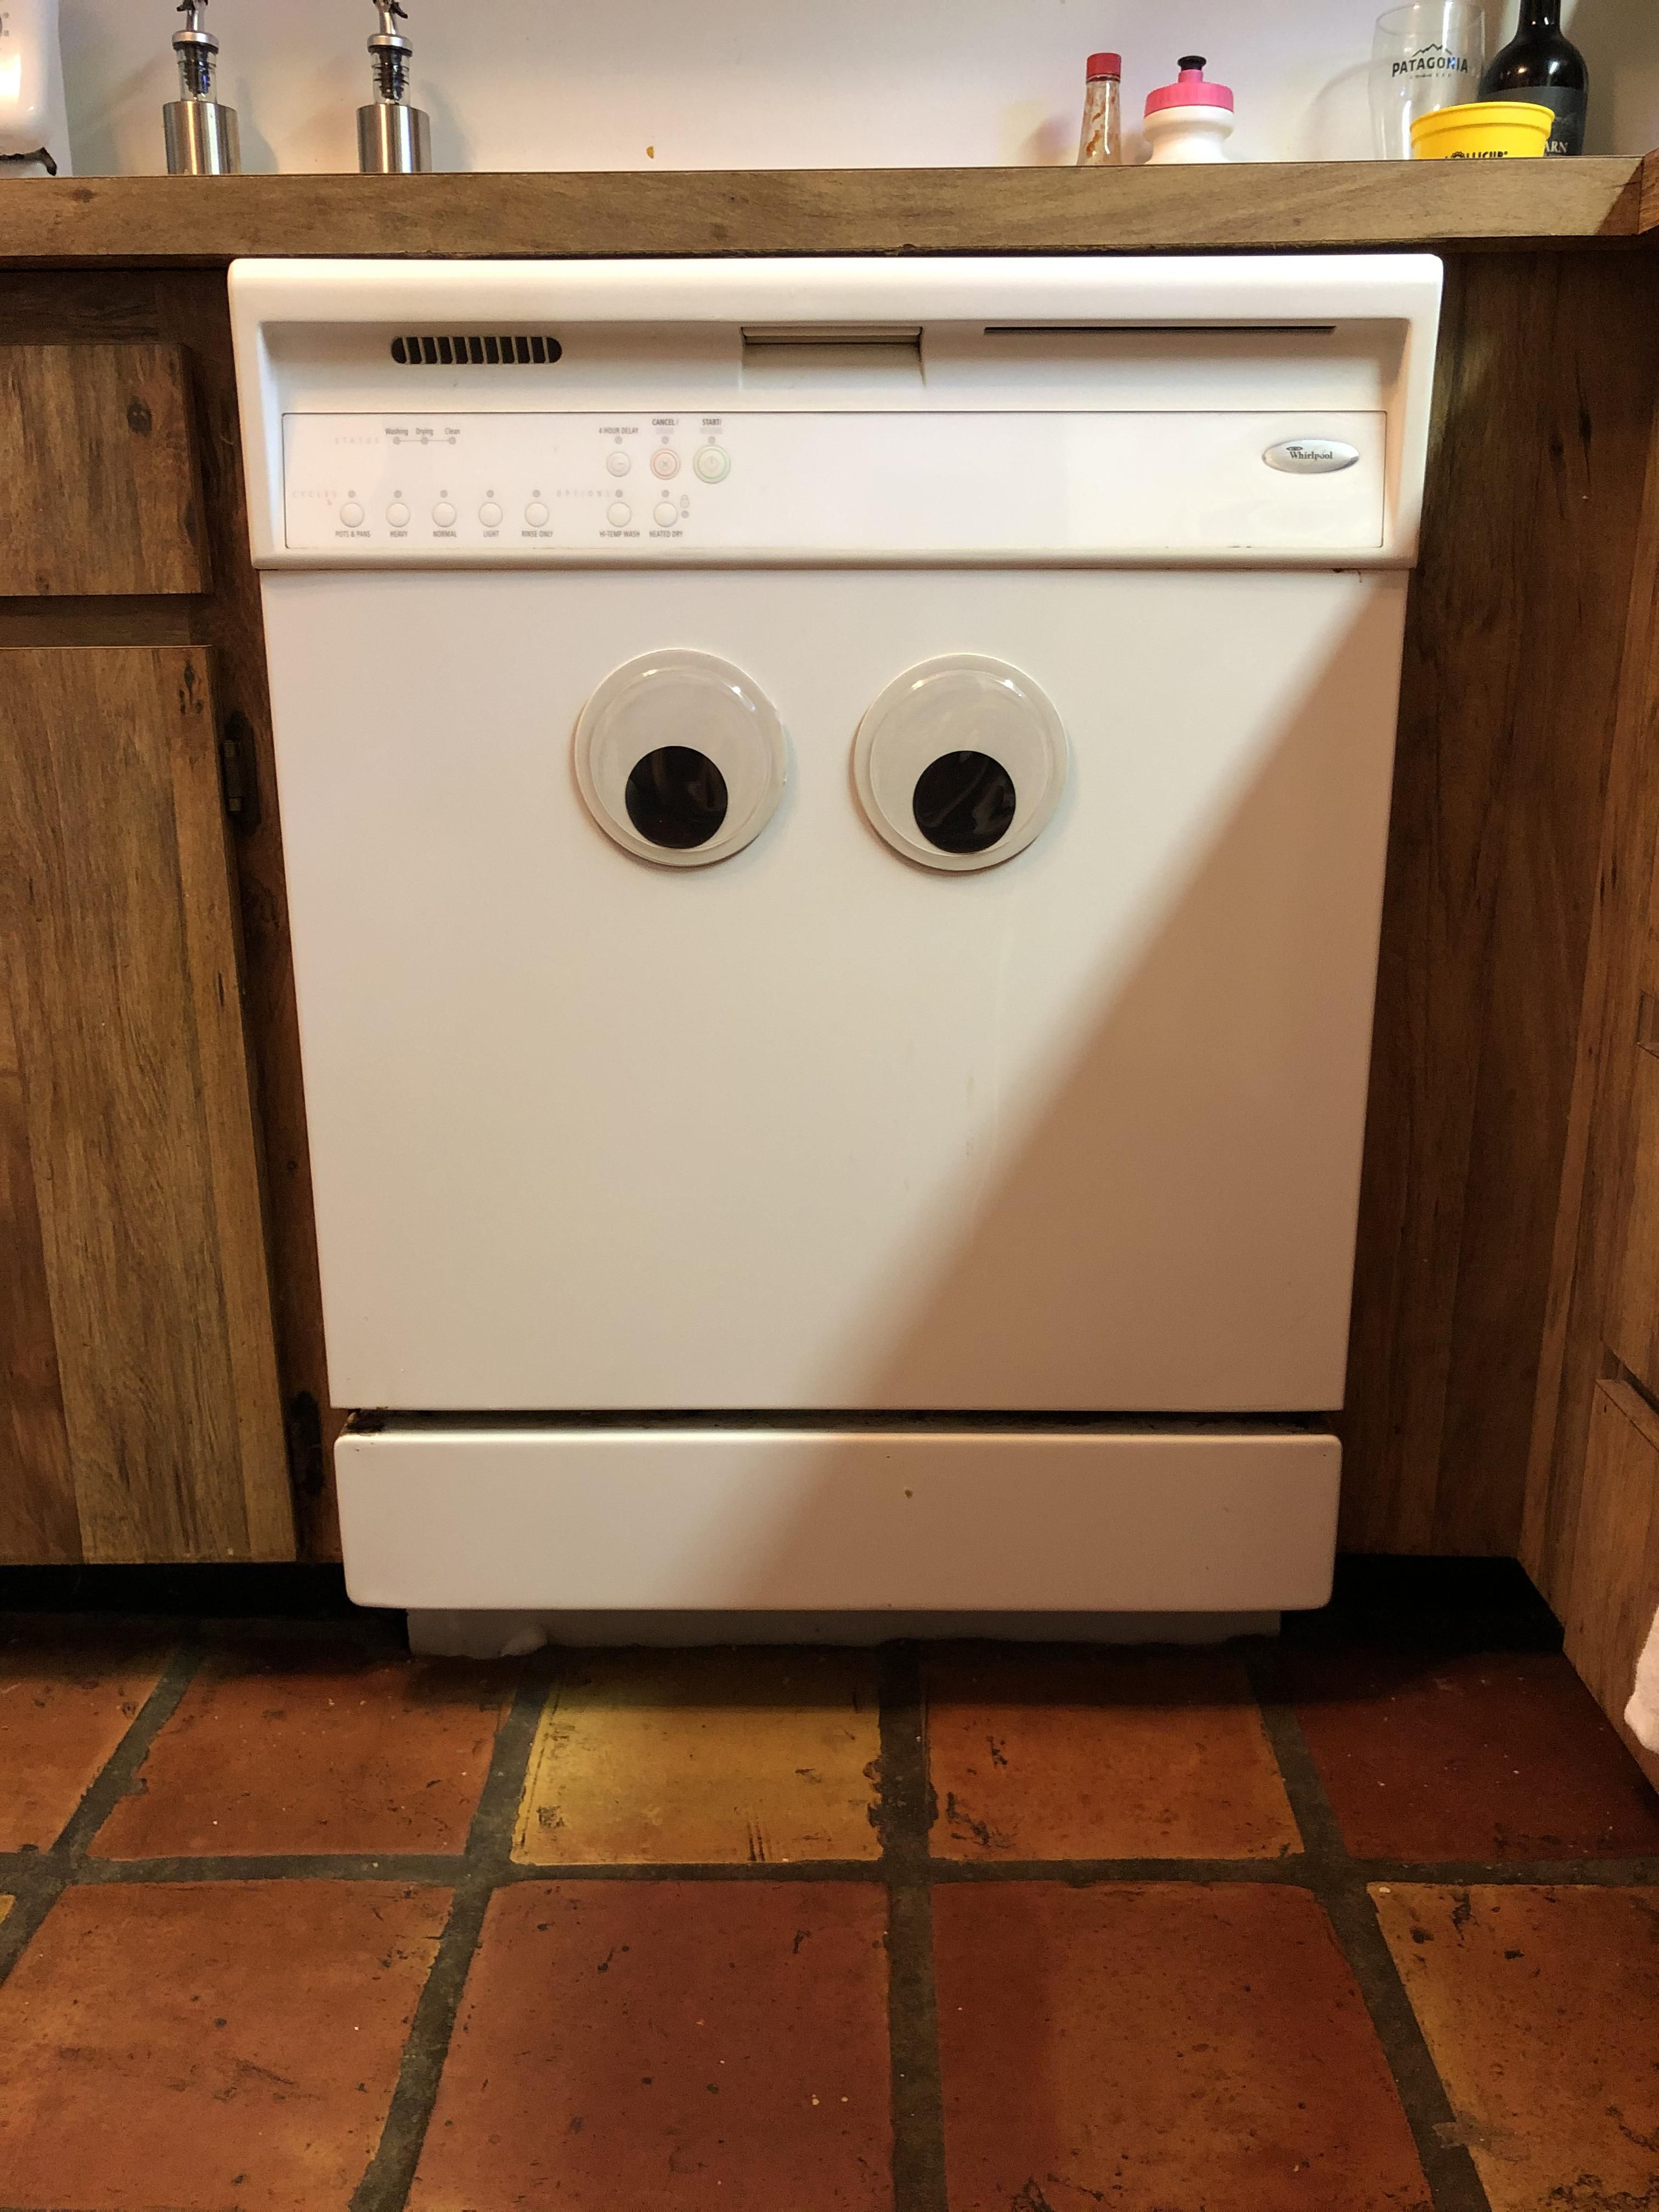 I added googly eyes to our dishwasher. He's not sure about them : |